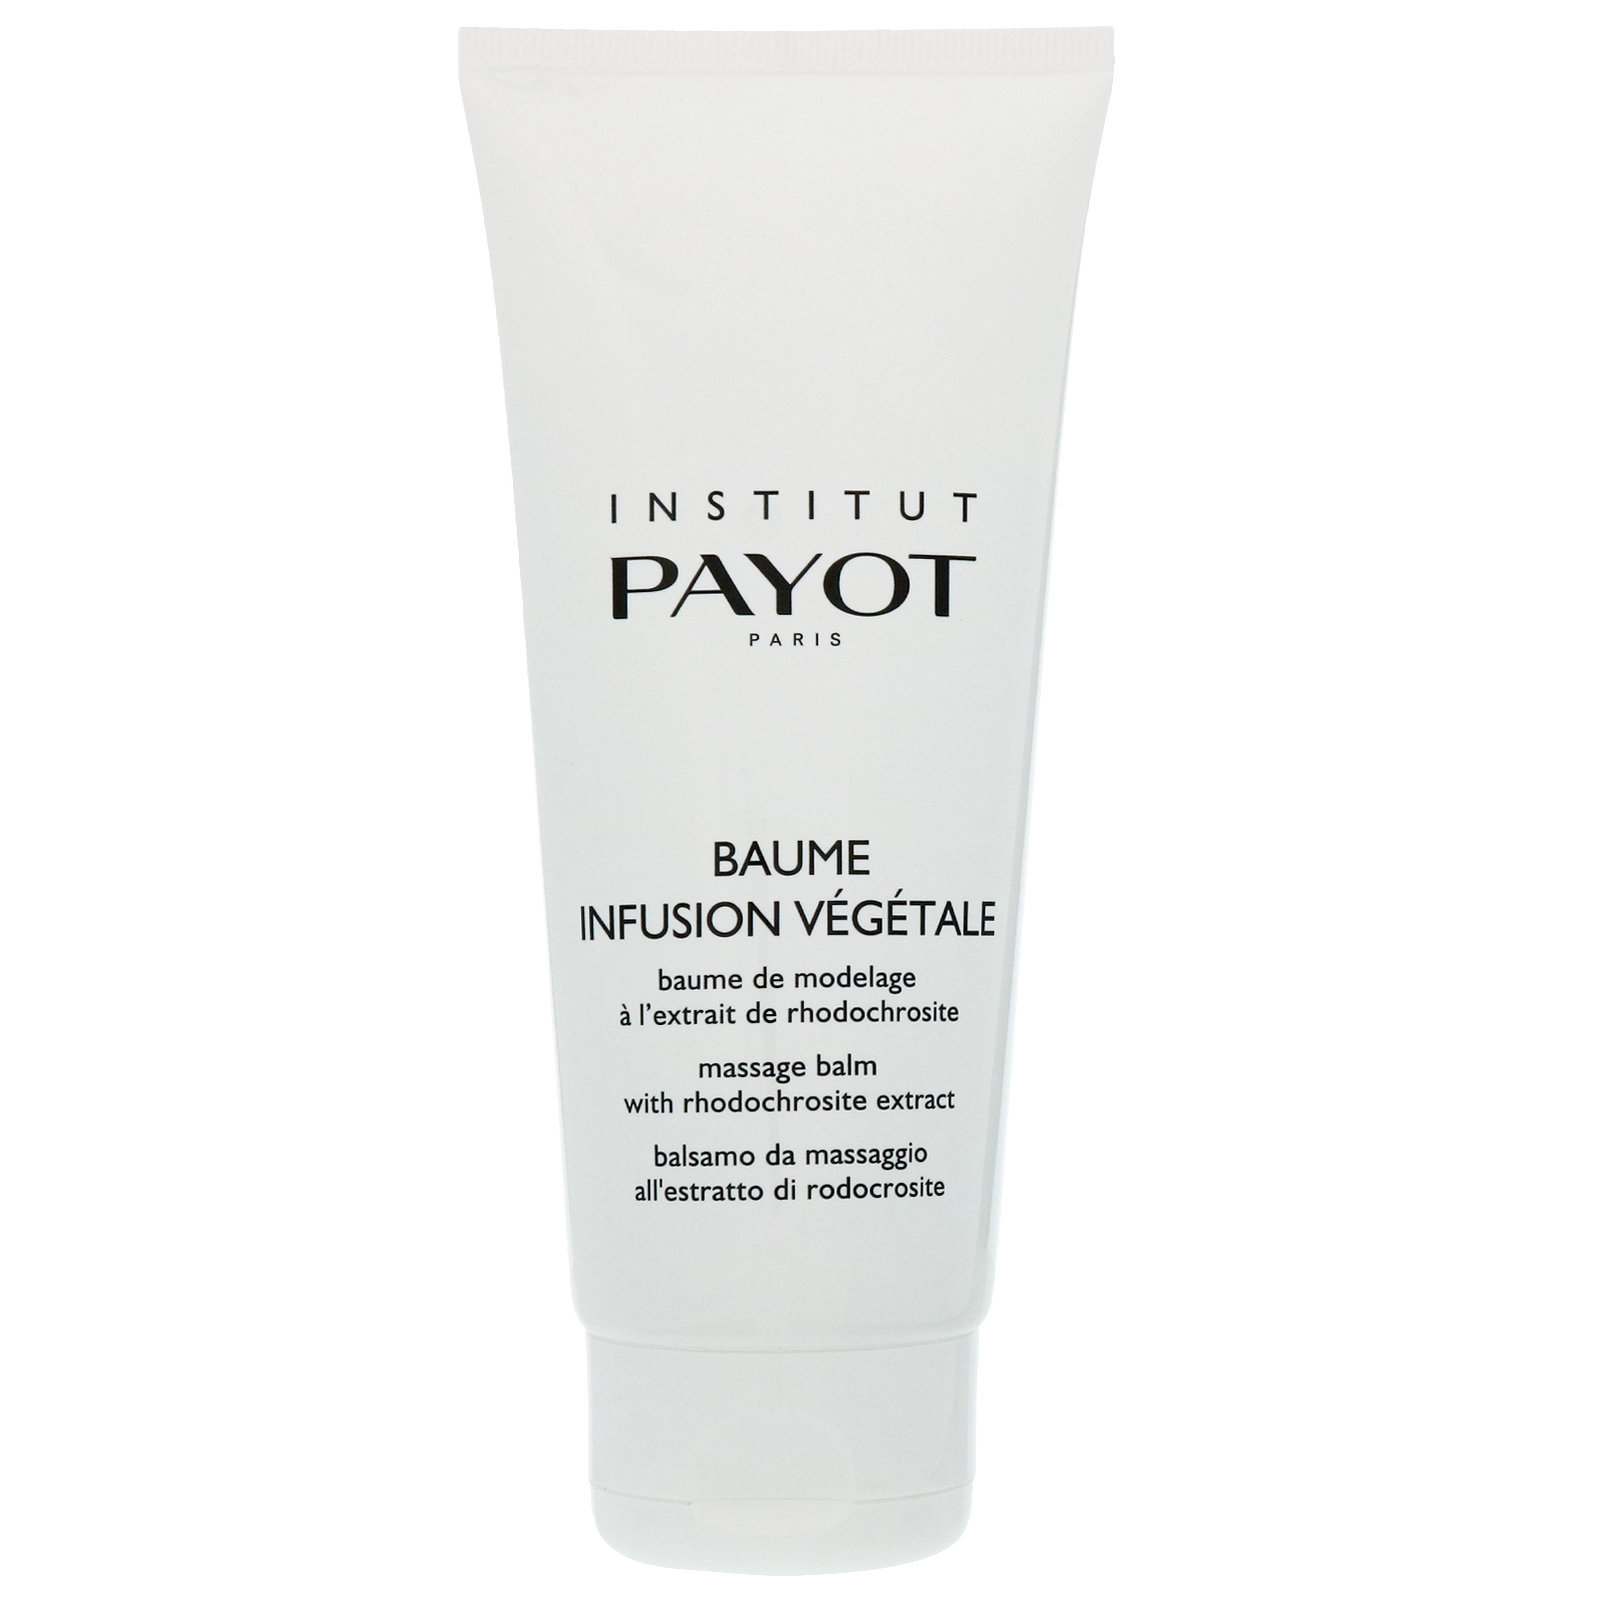 Payot Paris Body Baume Infusion Vegetale: Massage Balm 200ml